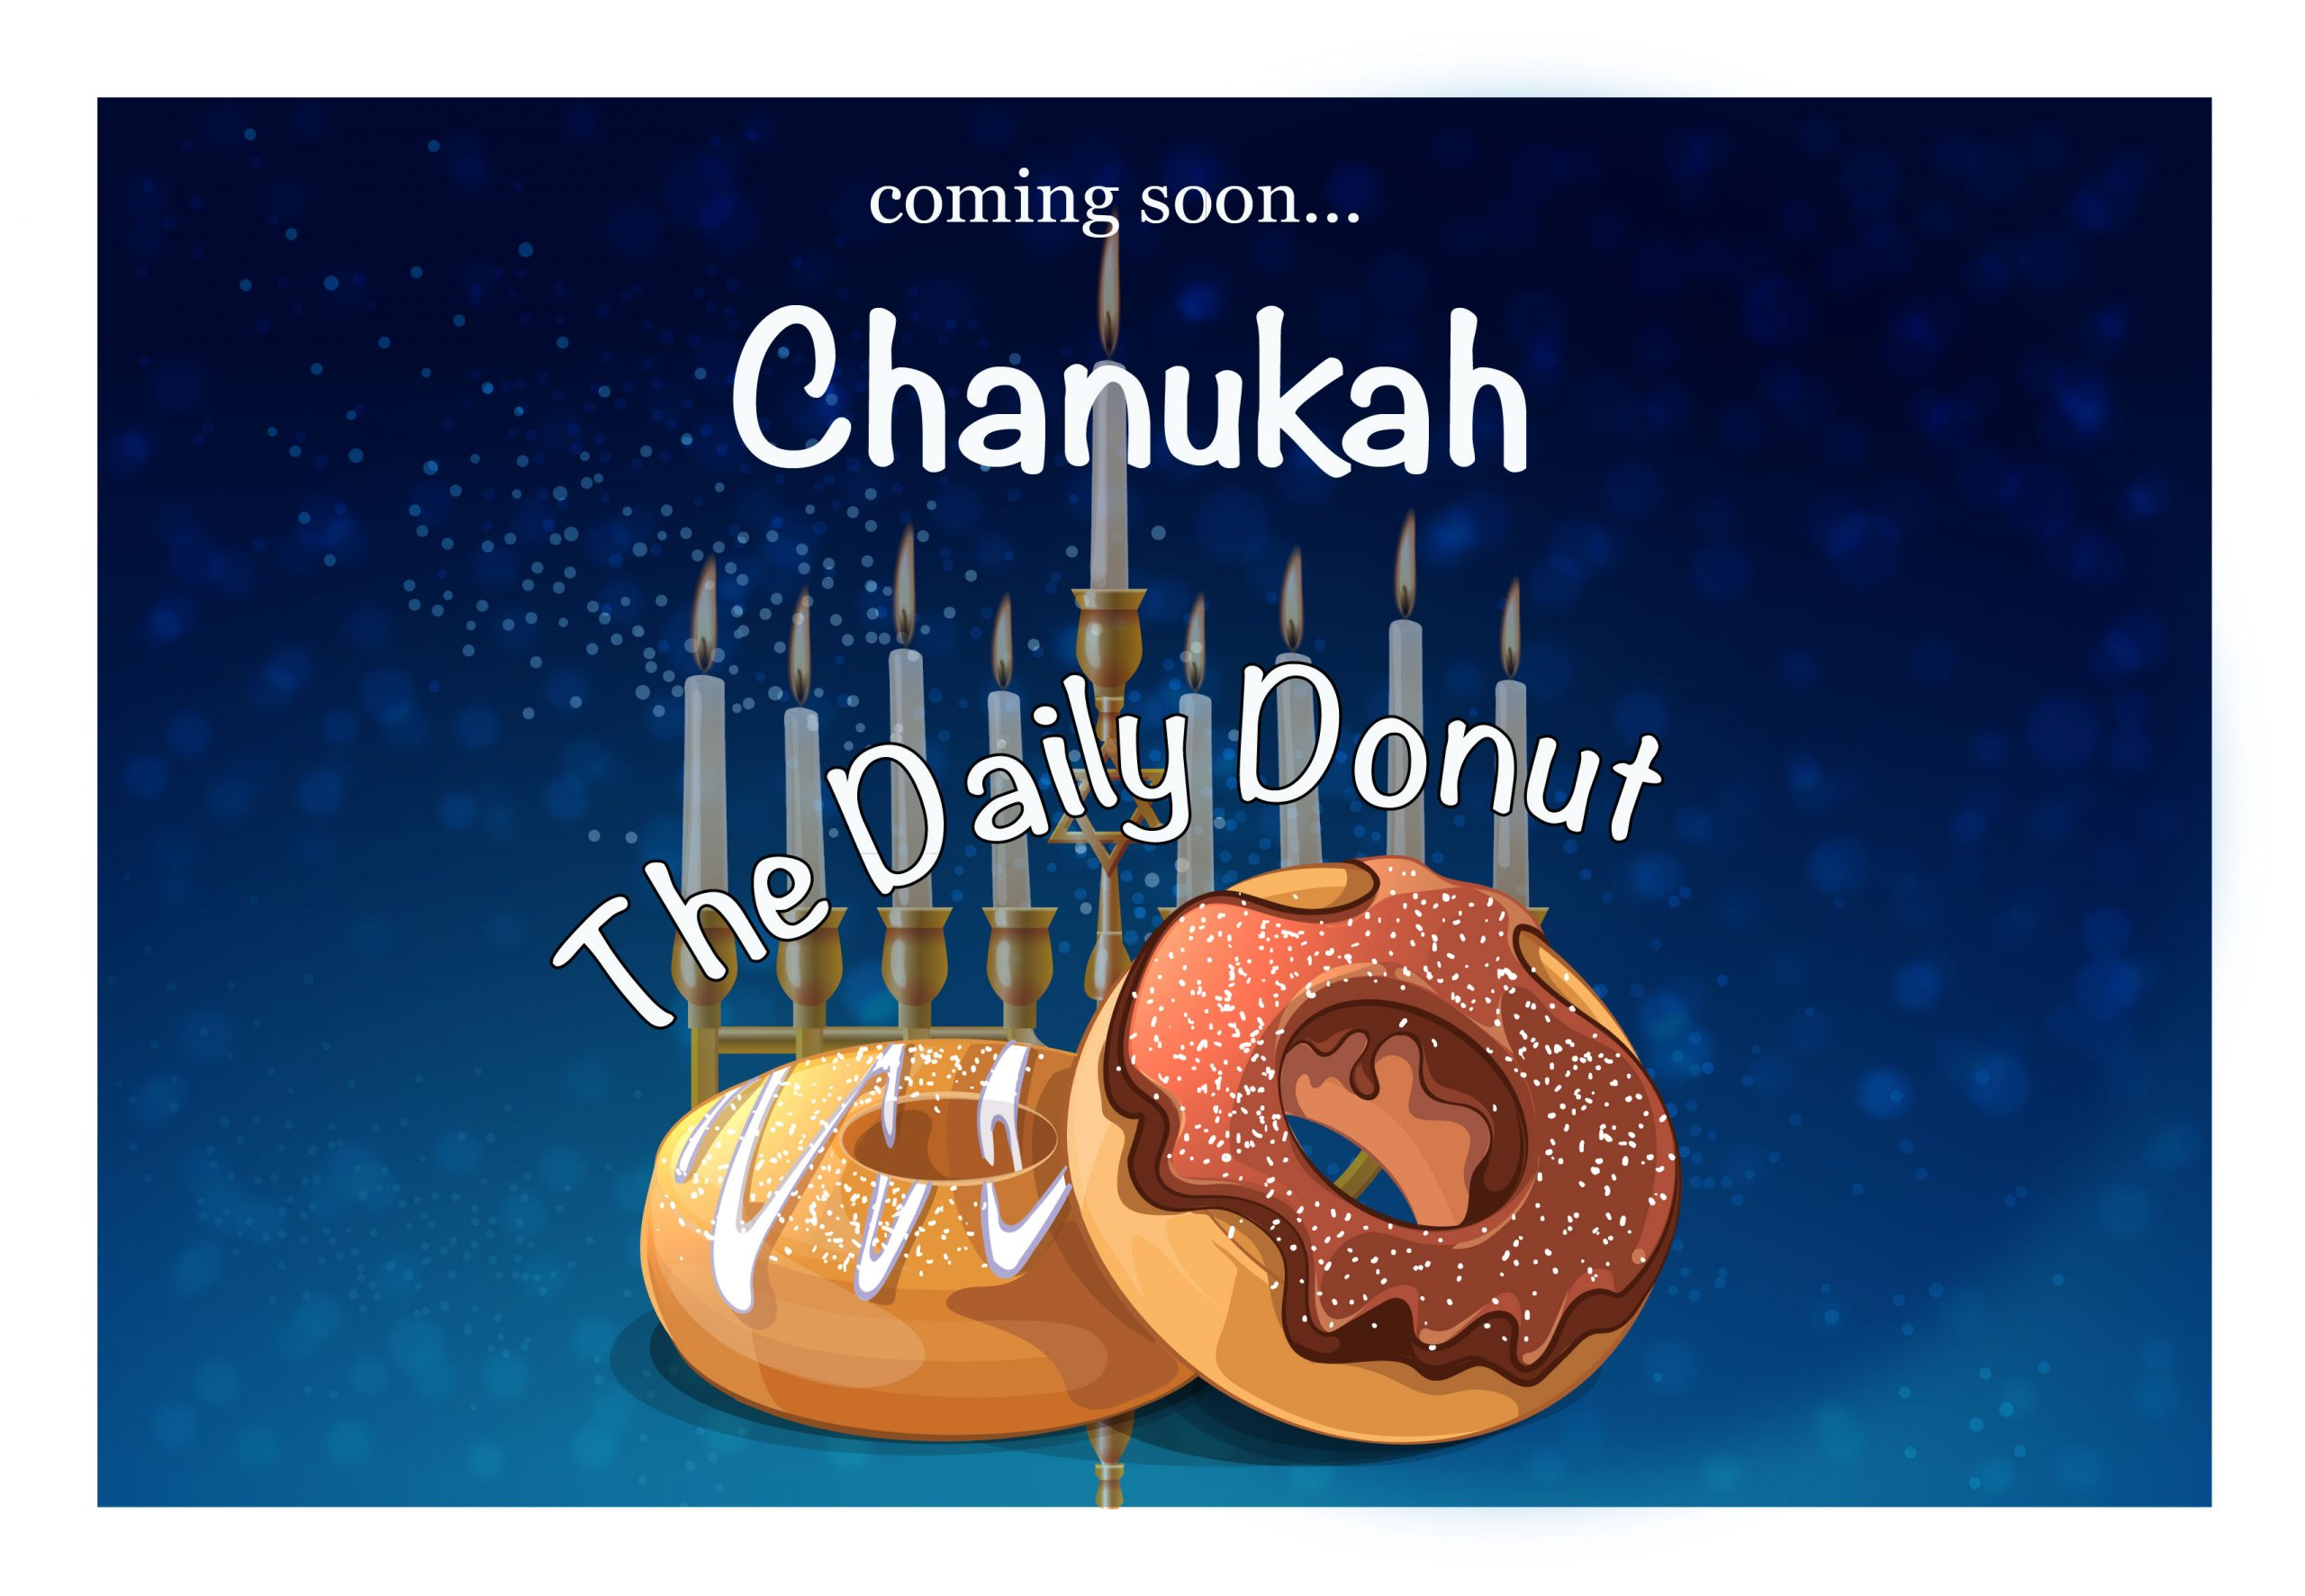 Chanukah: The Daily Donut – Coming Soon…